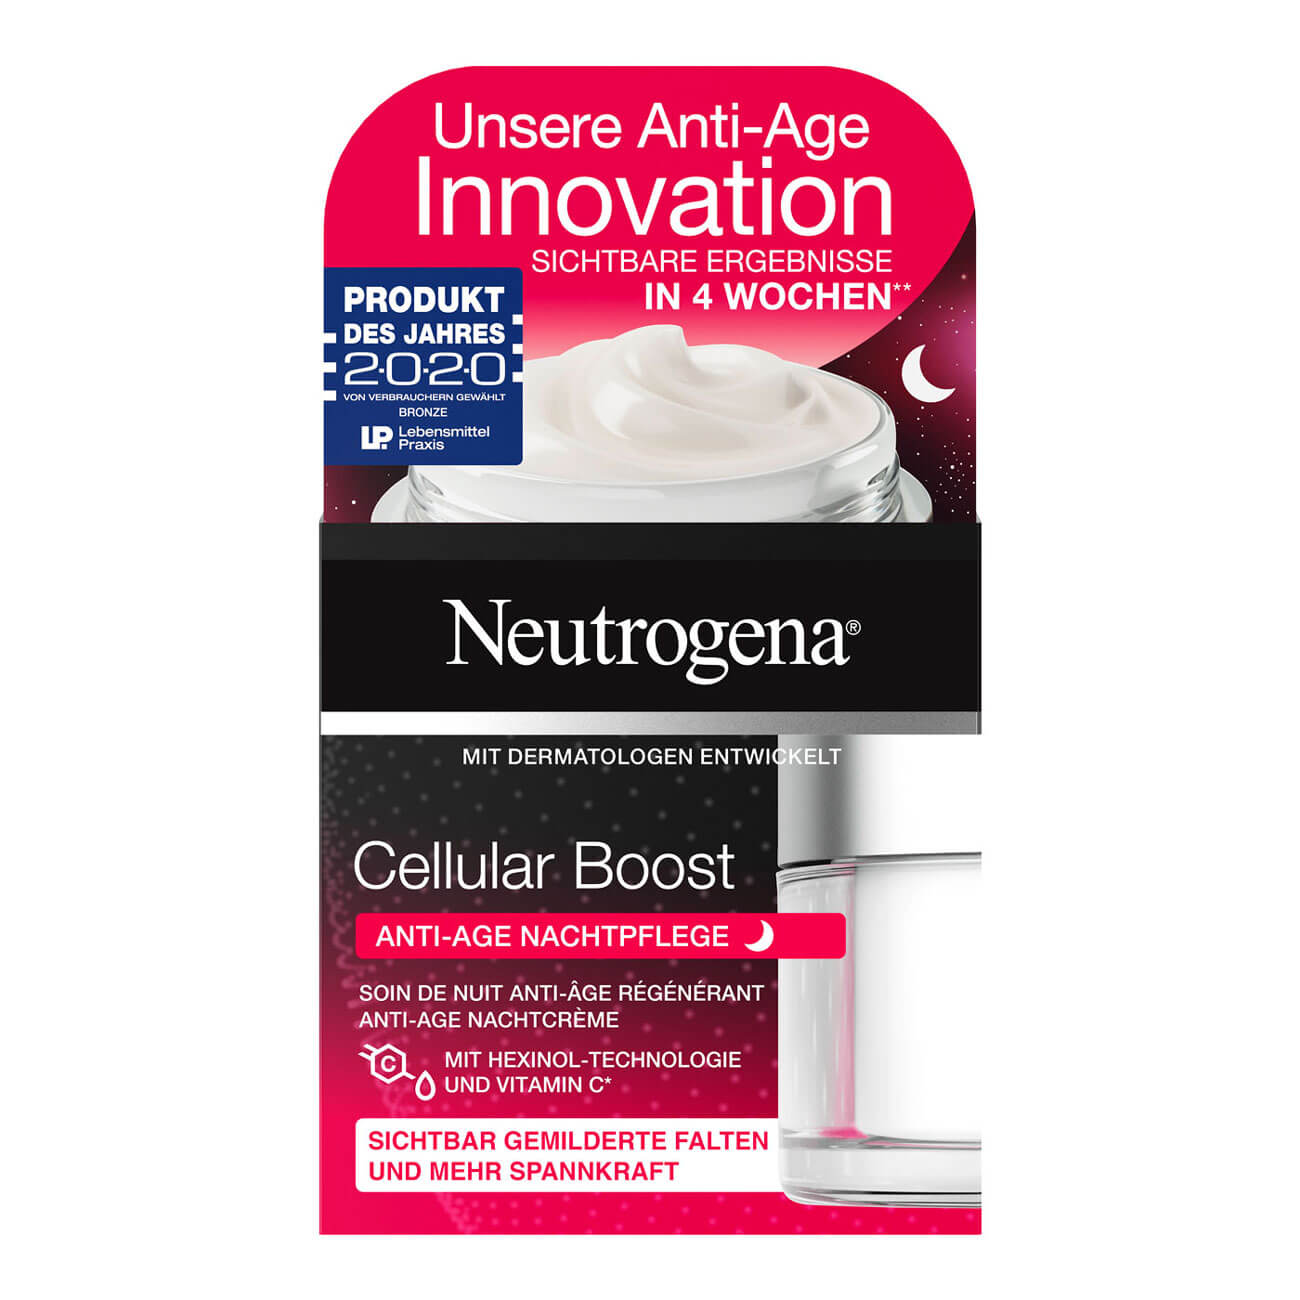 Neutrogena®Cellular Boost Anti-Age Nachtpflege